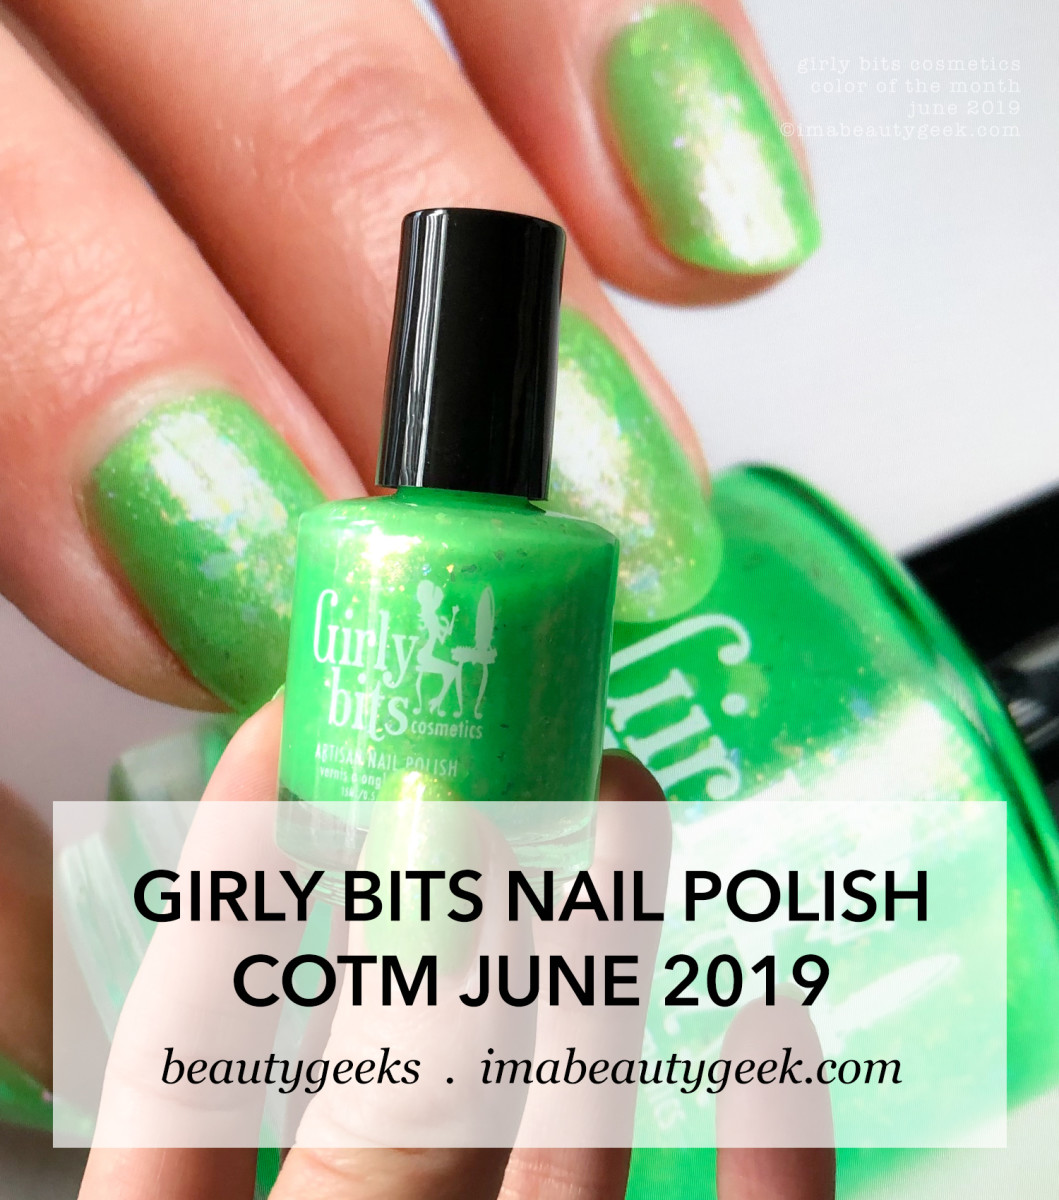 Girly Bits Colors of the Month June 2019